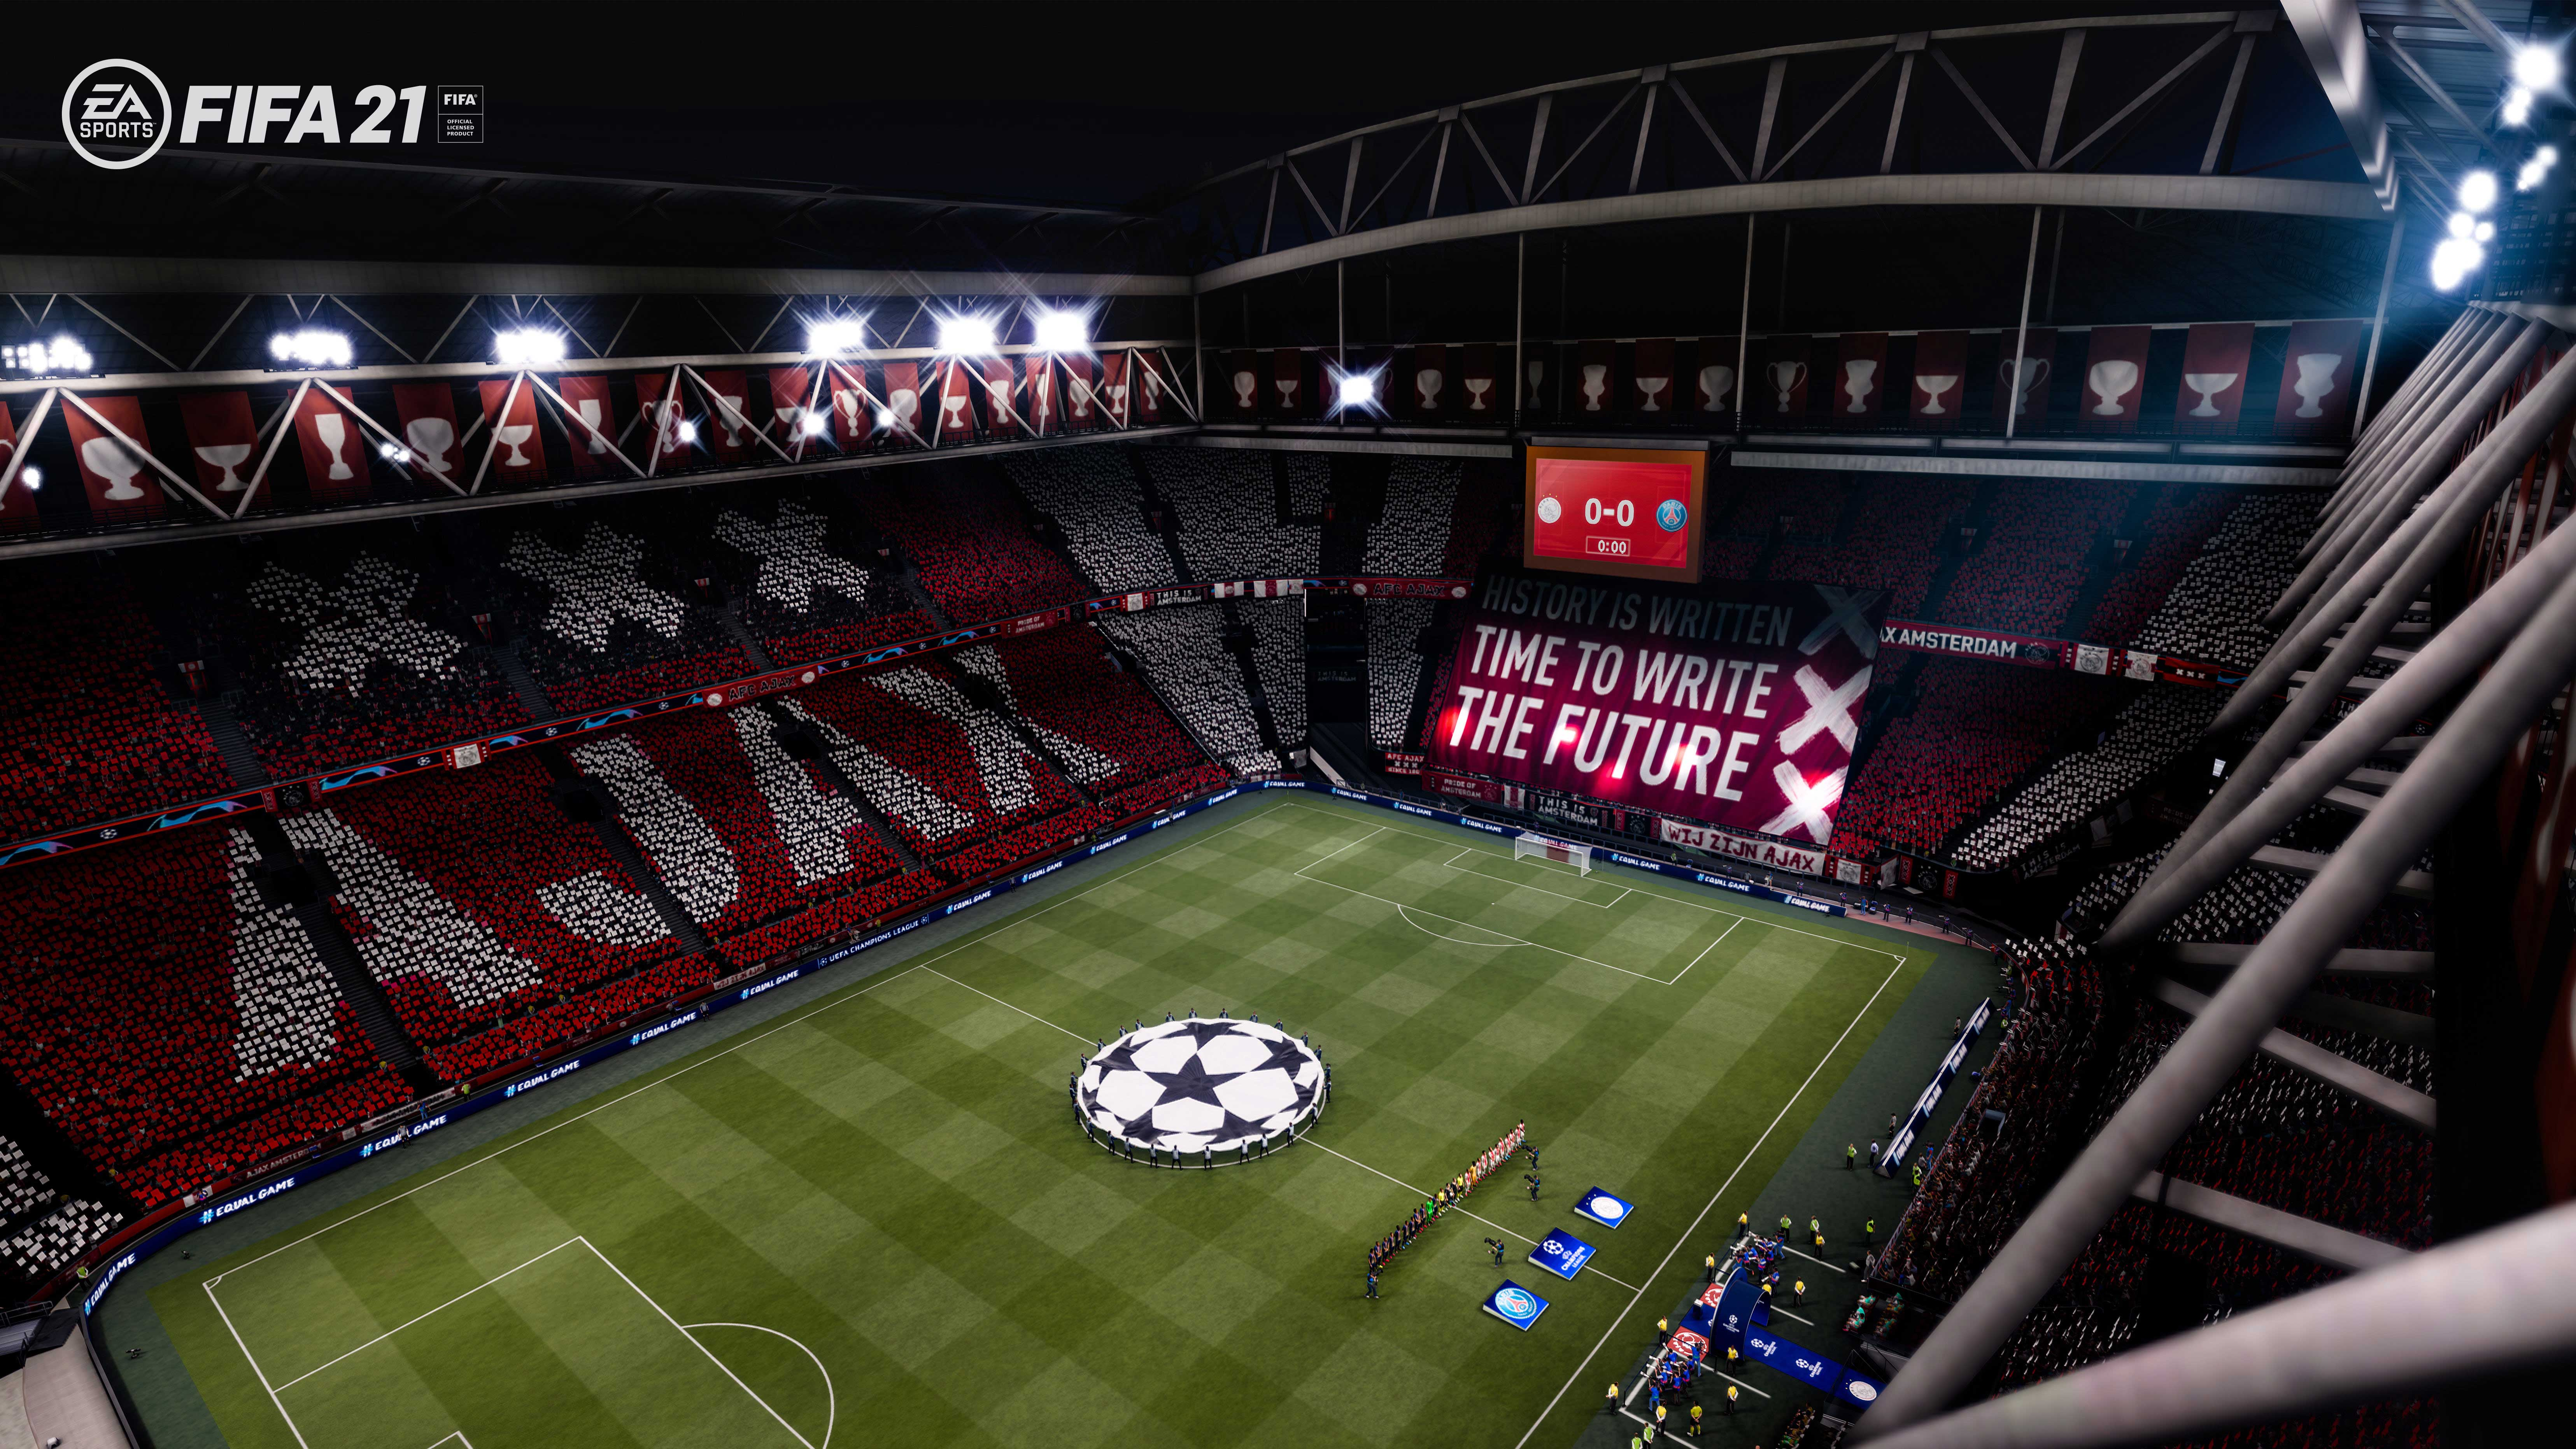 FIFA 21 Screenshots - All the Official FIFA 21 Images